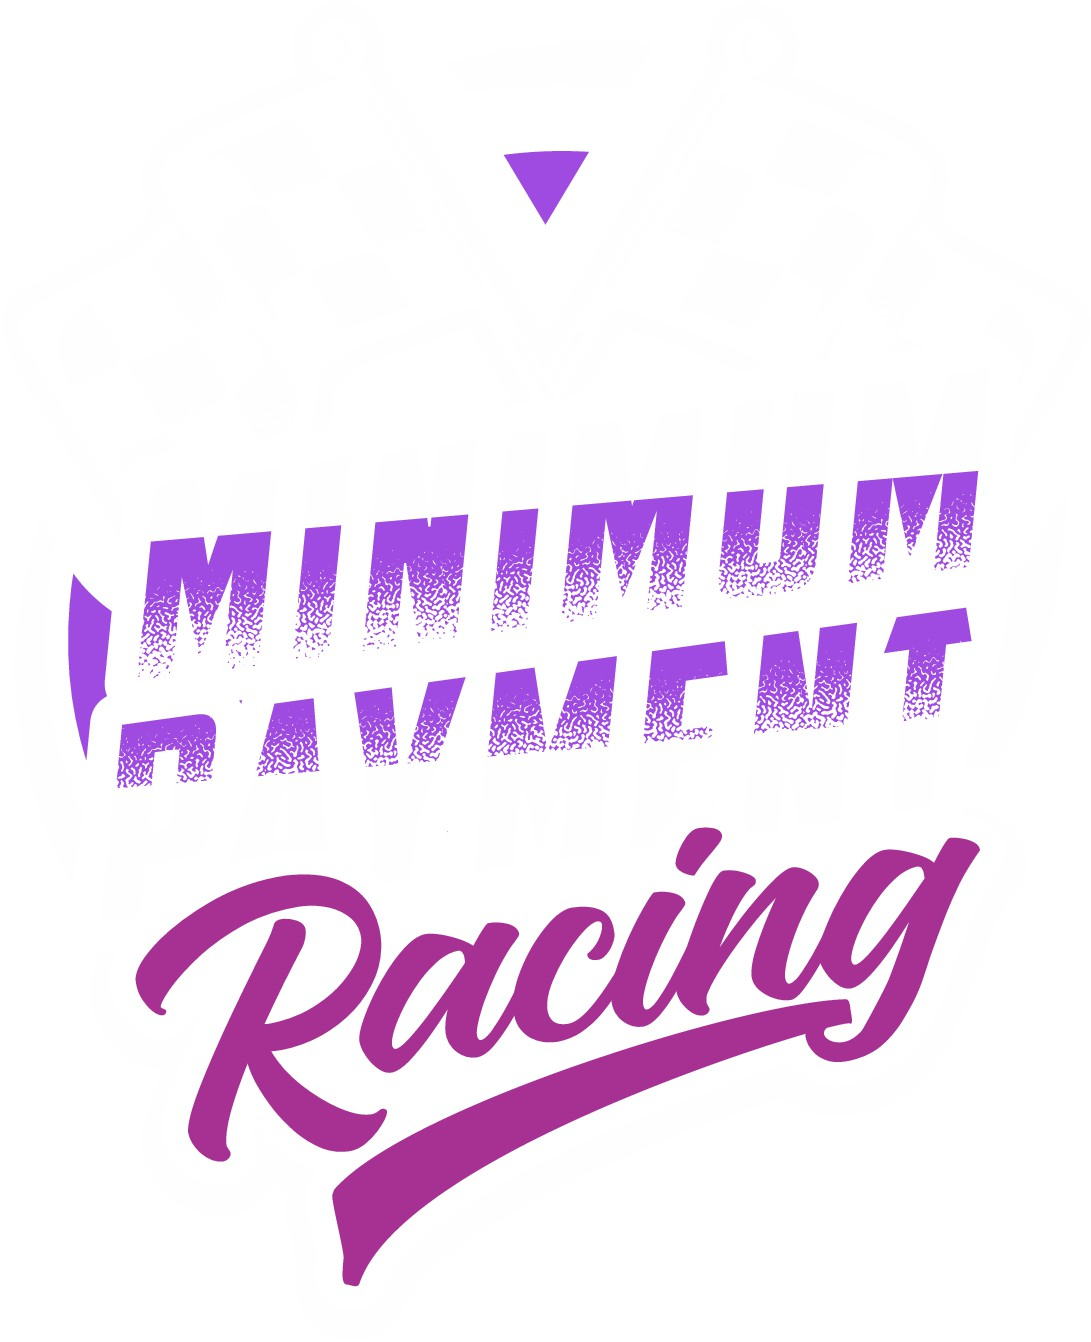 Need a slick T-Shirt design for our Auto Racing Team